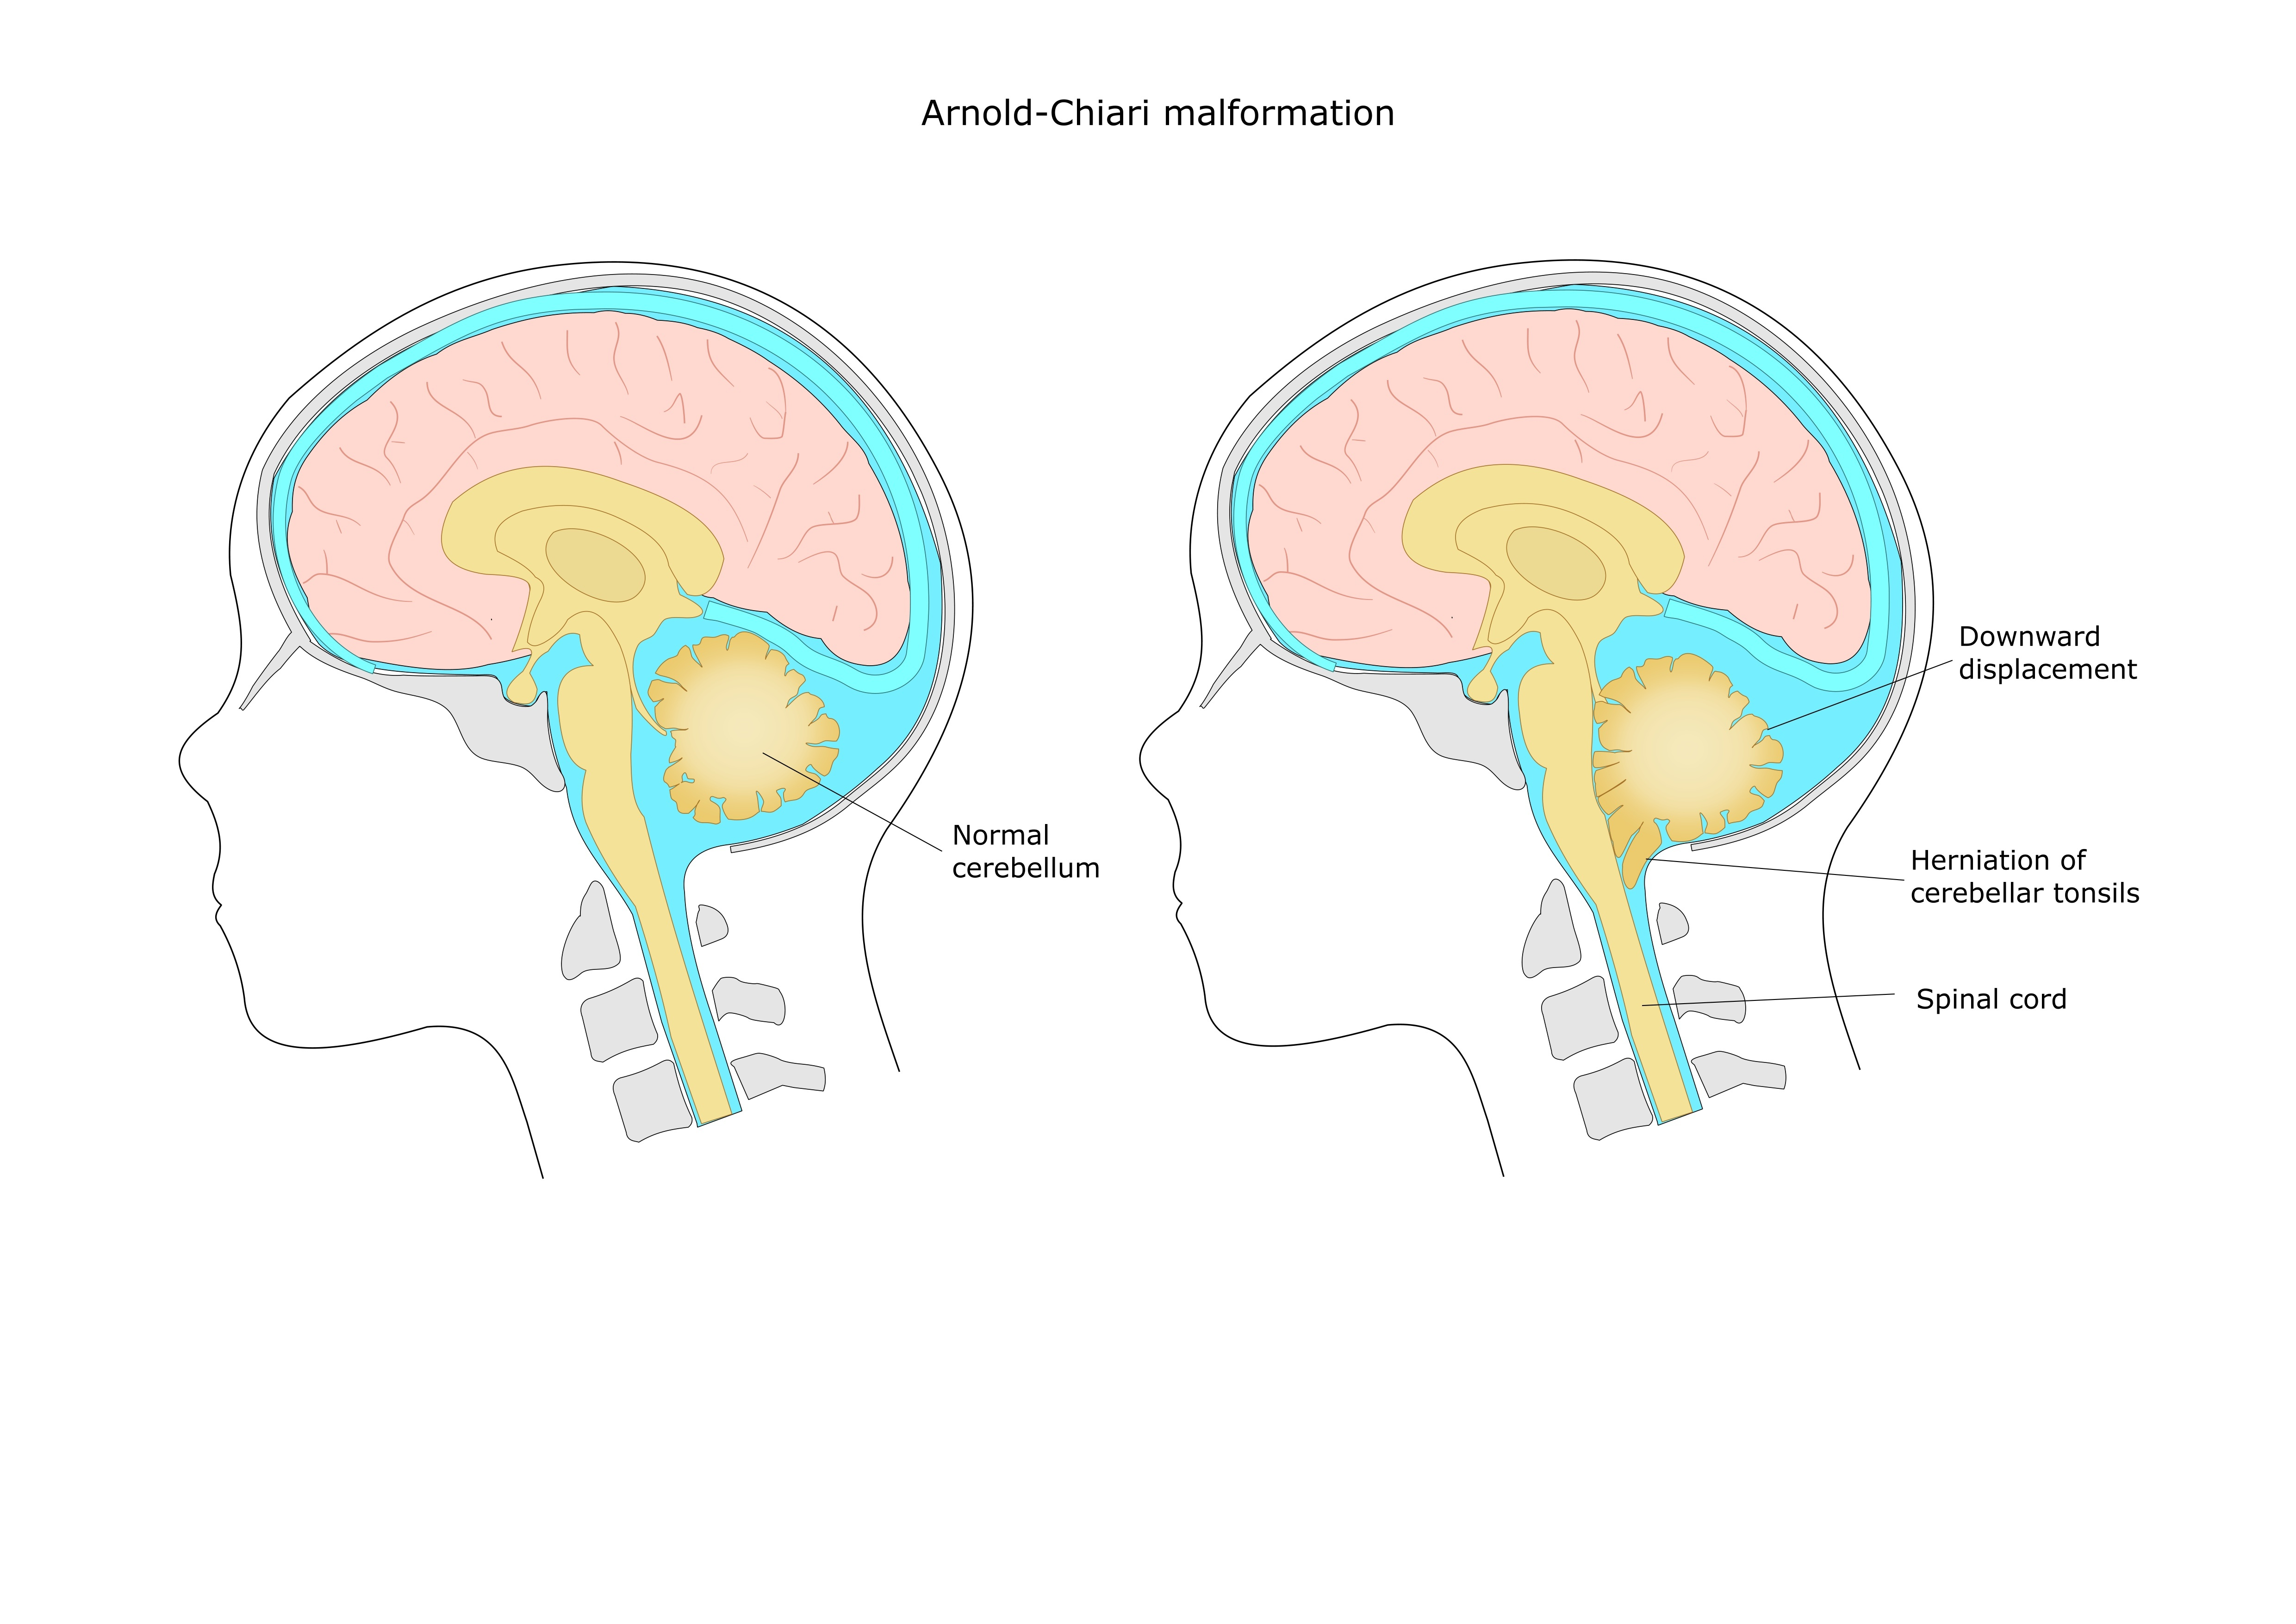 An illustration of Arnold-Chiari malformations